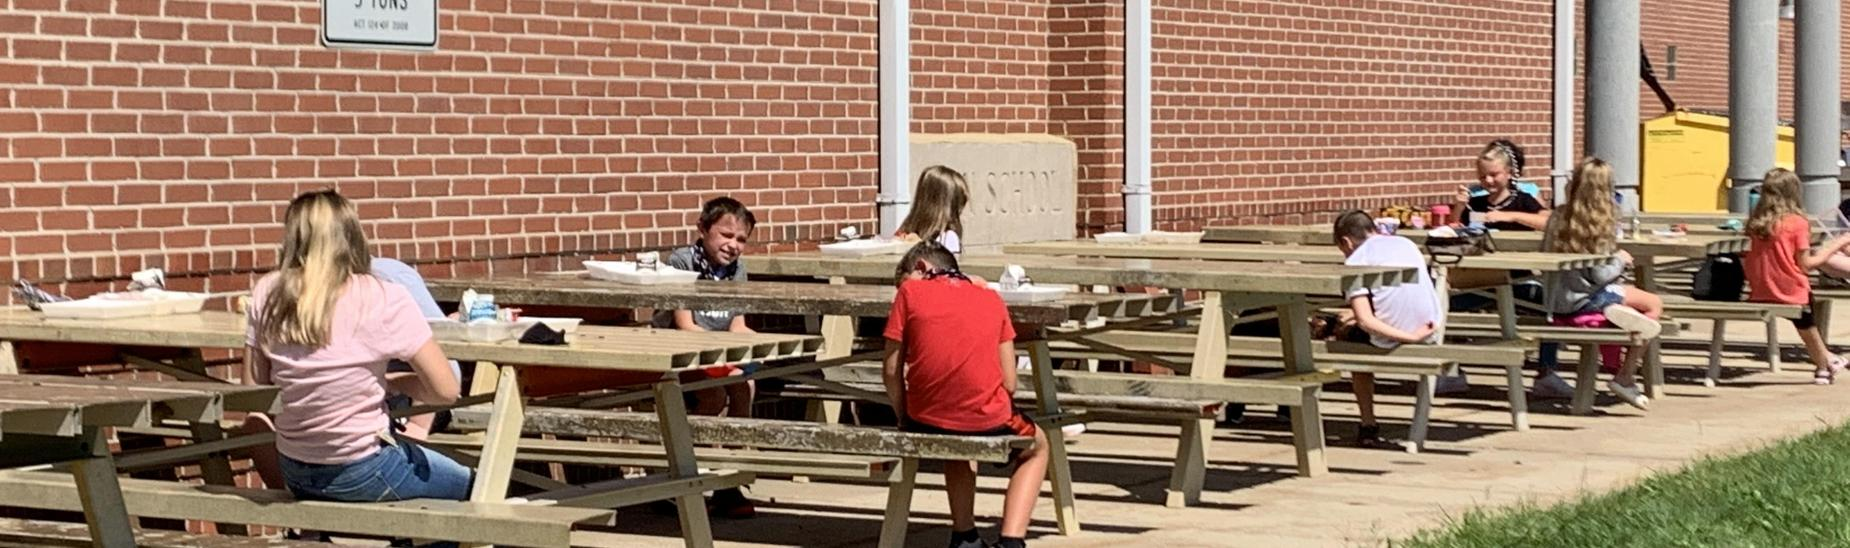 MES Students Enjoying an Outdoor Lunch